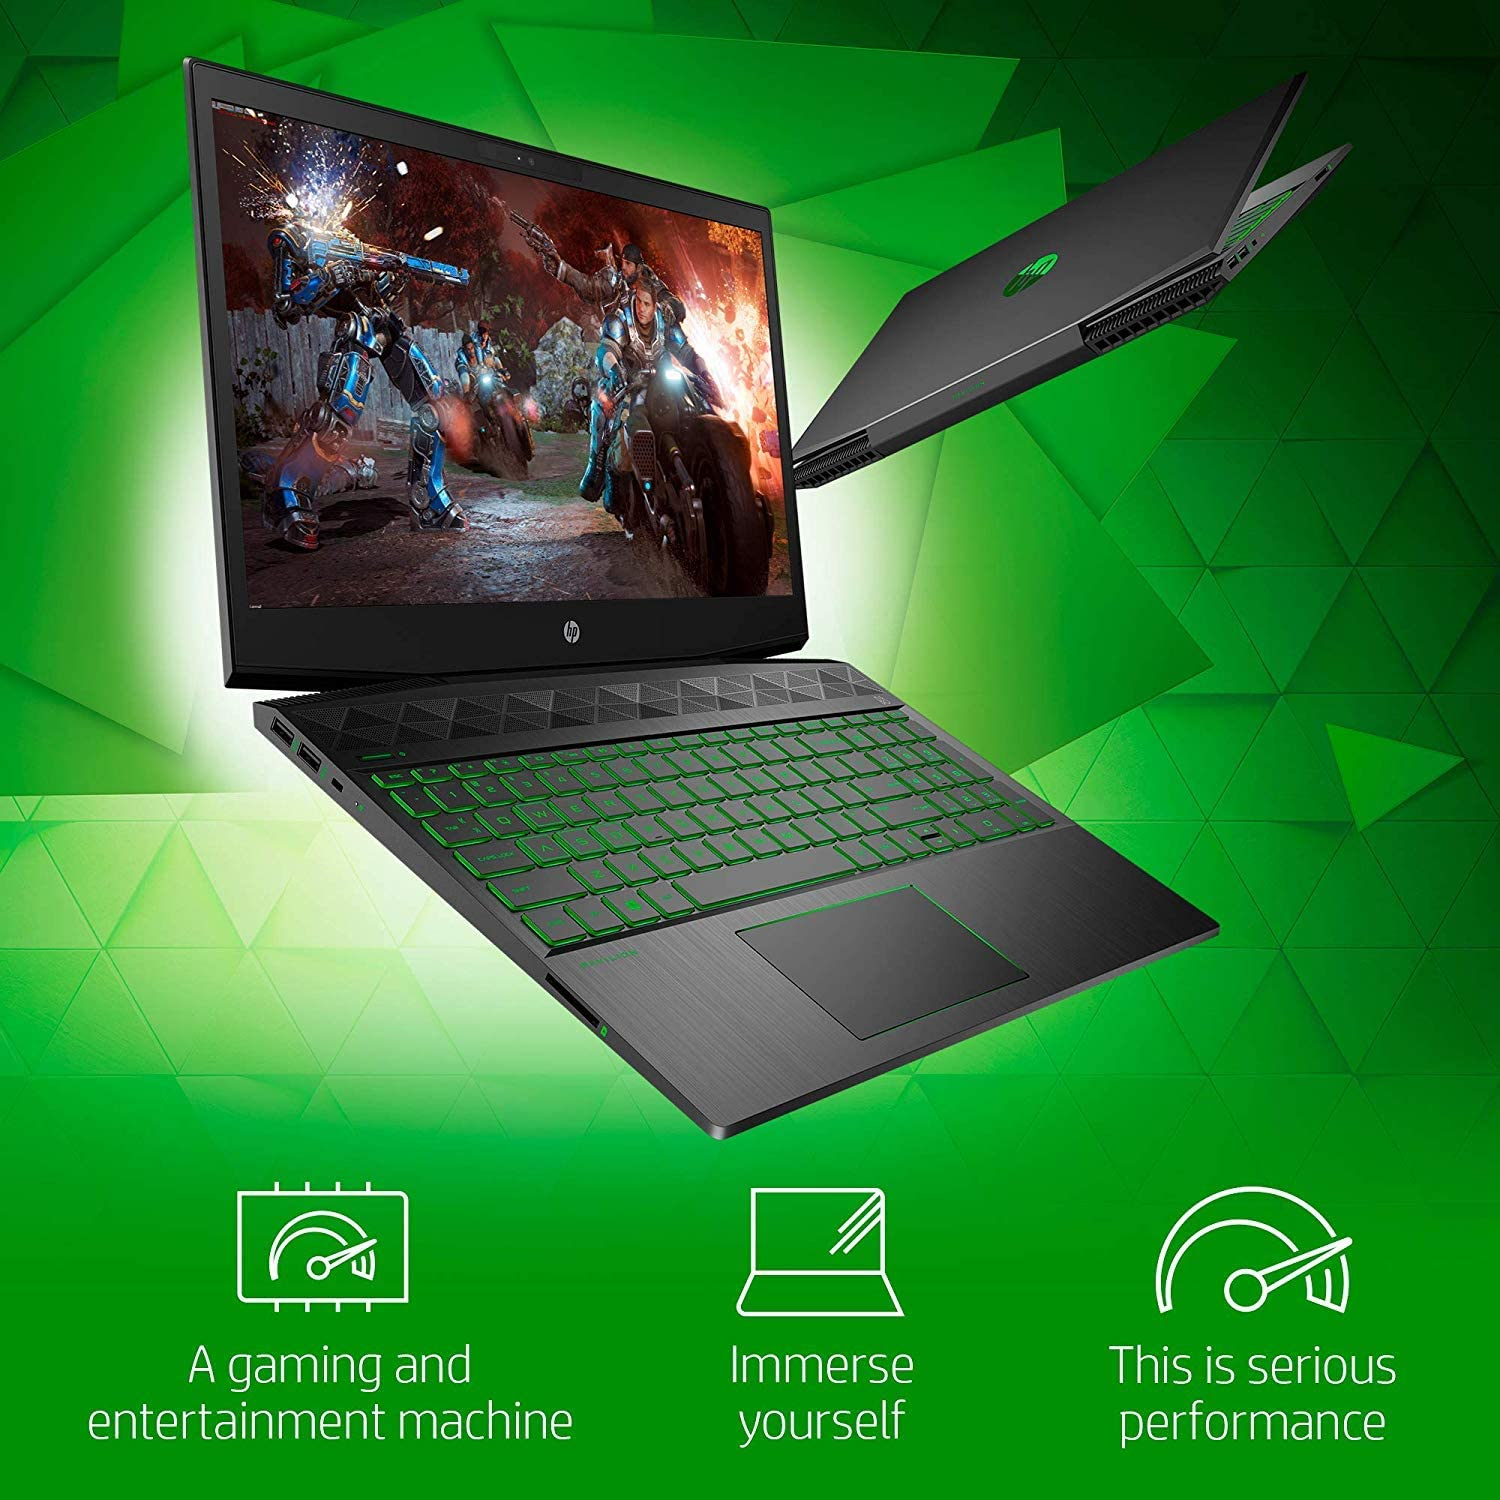 "New 2020 HP Pavilion Gaming Laptop 15.6"" FHD 1080p Core i5-9300H NVIDIA GTX 1050 3GB 8GB RAM 256GB SSD Windows 10"